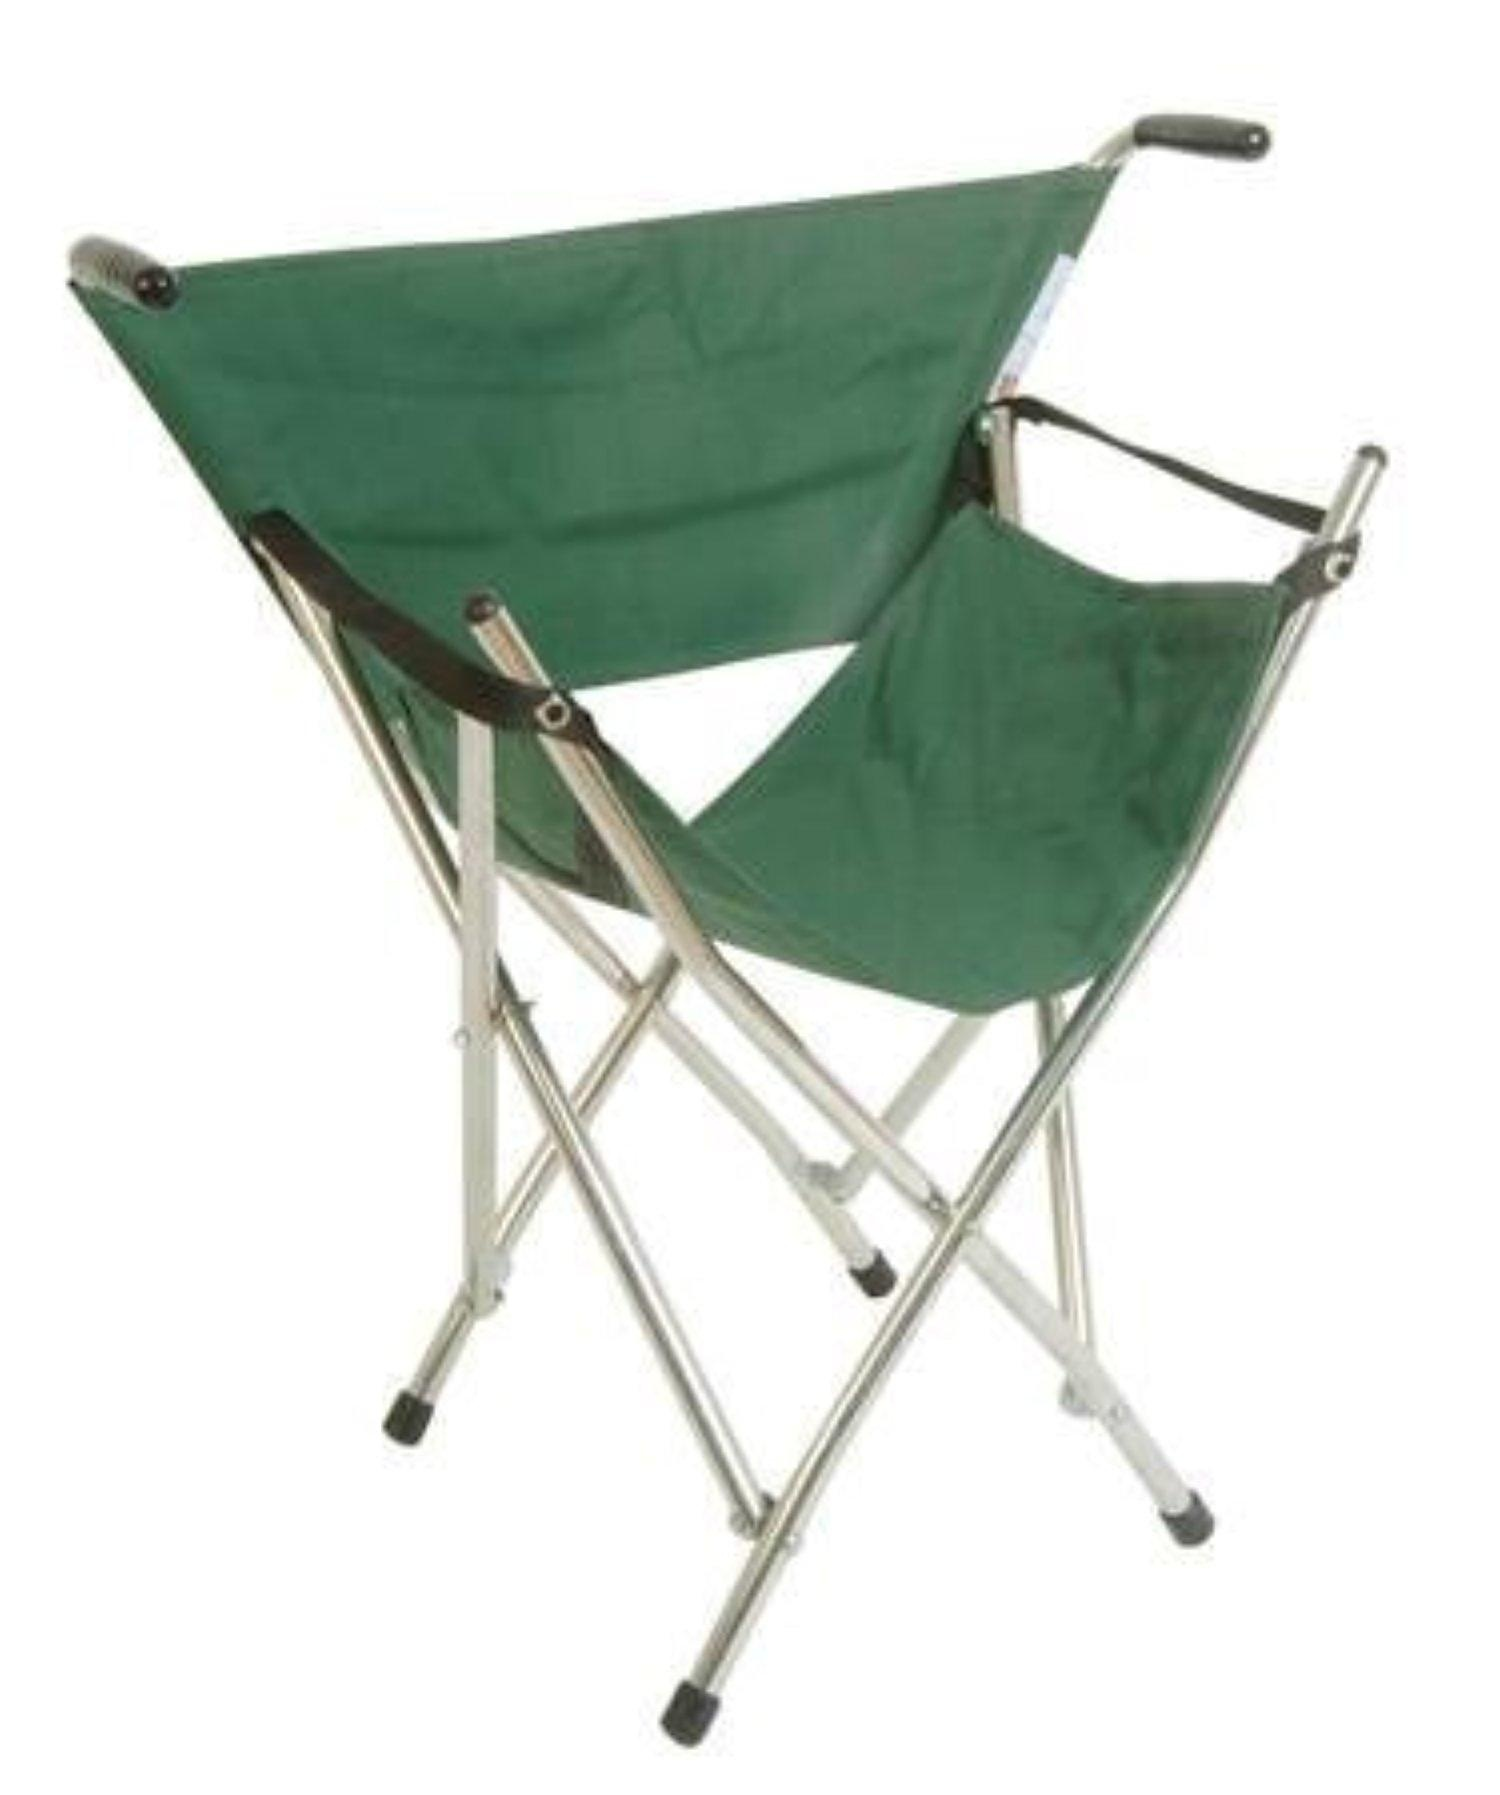 Hight Quality Well Made Out And About Folding Seat In Green - Useful For Outdoor Concerts, Point-To-Point Racing, Picnics And Other Events. by Classic Canes